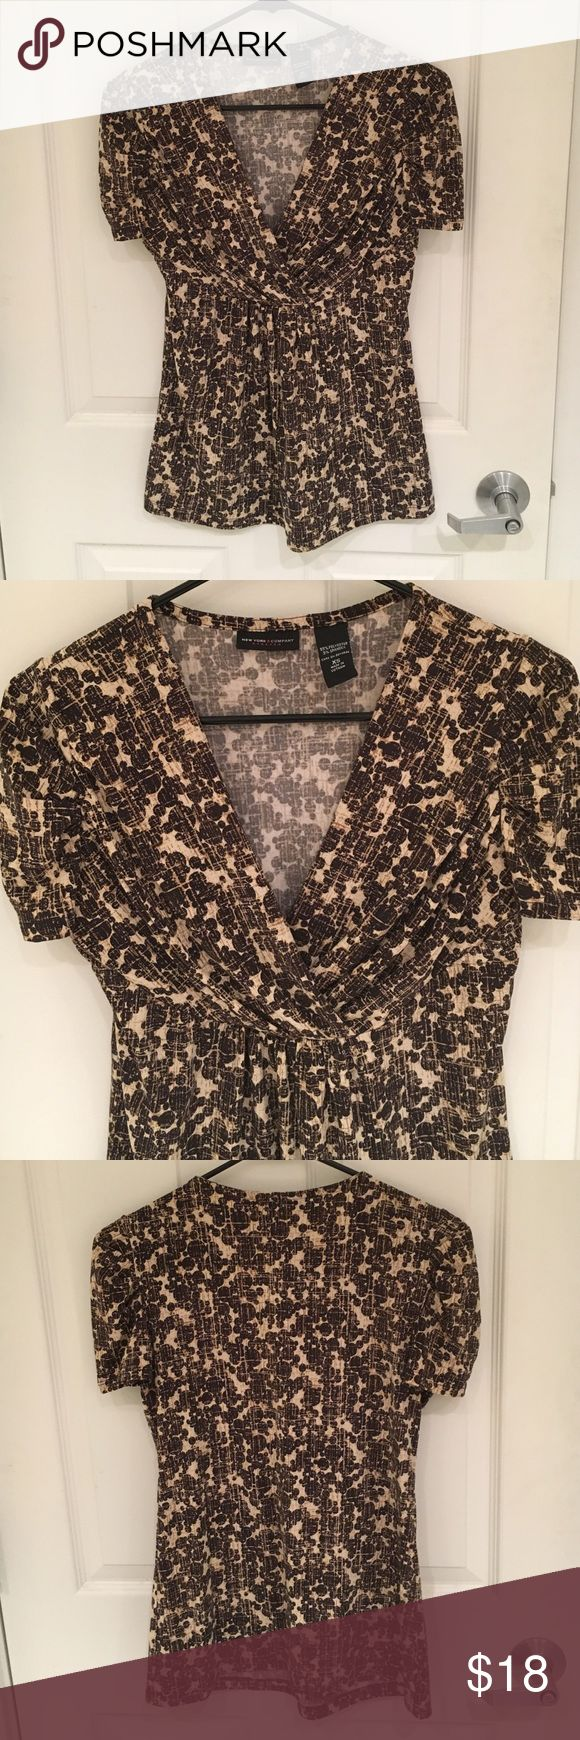 New York & Company Blouse Neutral colored, patterned V-neck shirt. Great for work and wearing with dress pants and heels. Short-sleeves. Gathers a little under the bust. Very flattering. New York & Company Tops Blouses